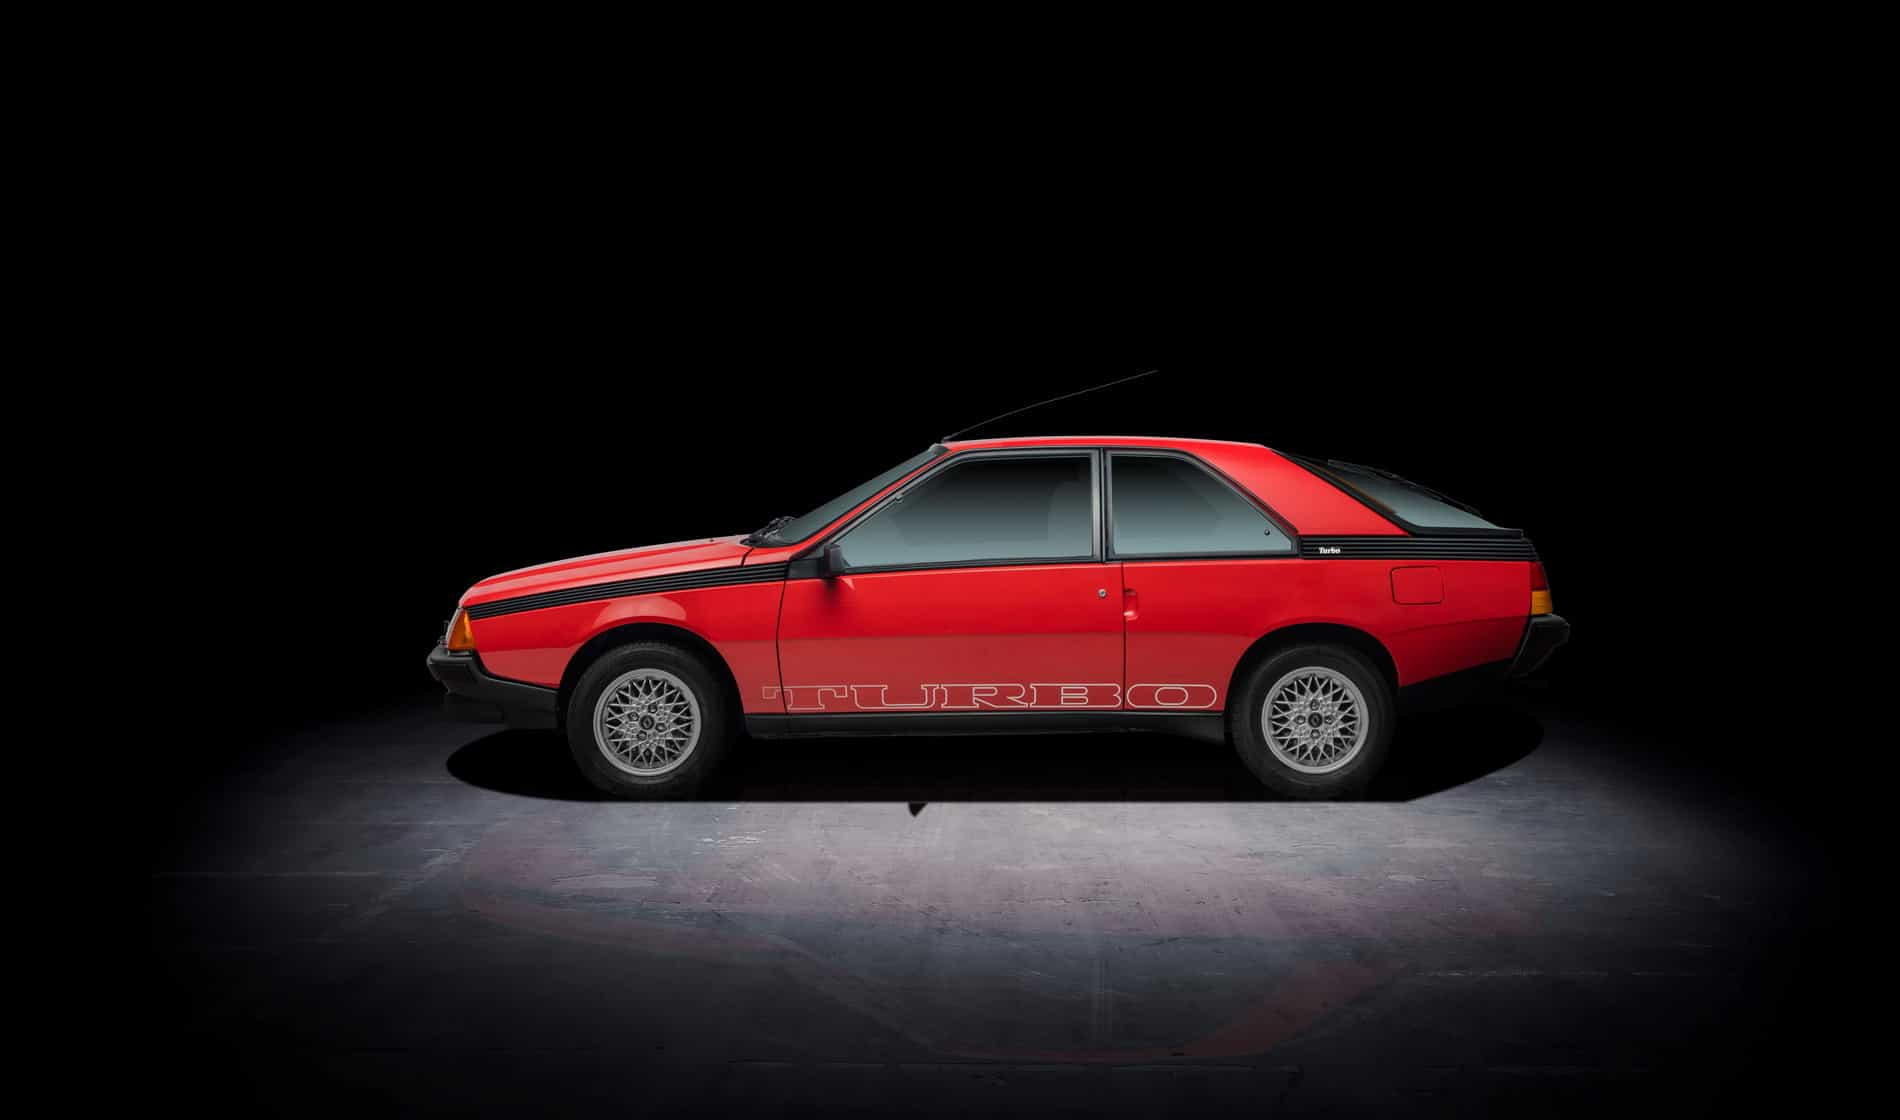 1983 – Renault Fuego Turbo